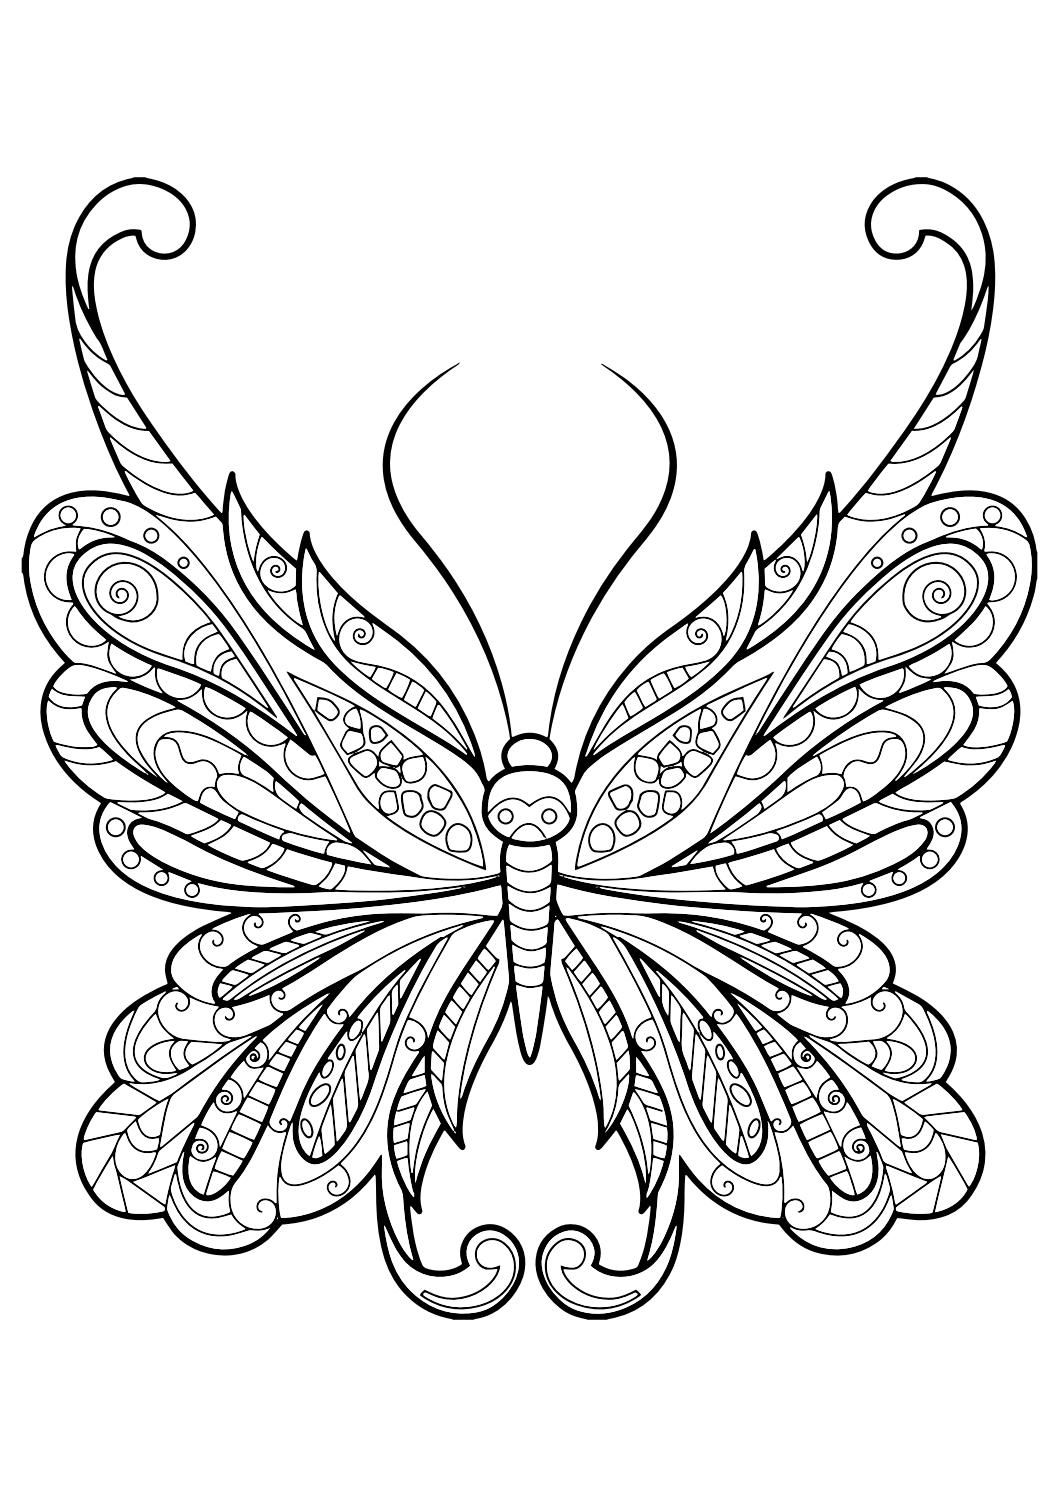 Adult butterfly coloring book easy christmas crafts for Coloring pages of butterflies for adults